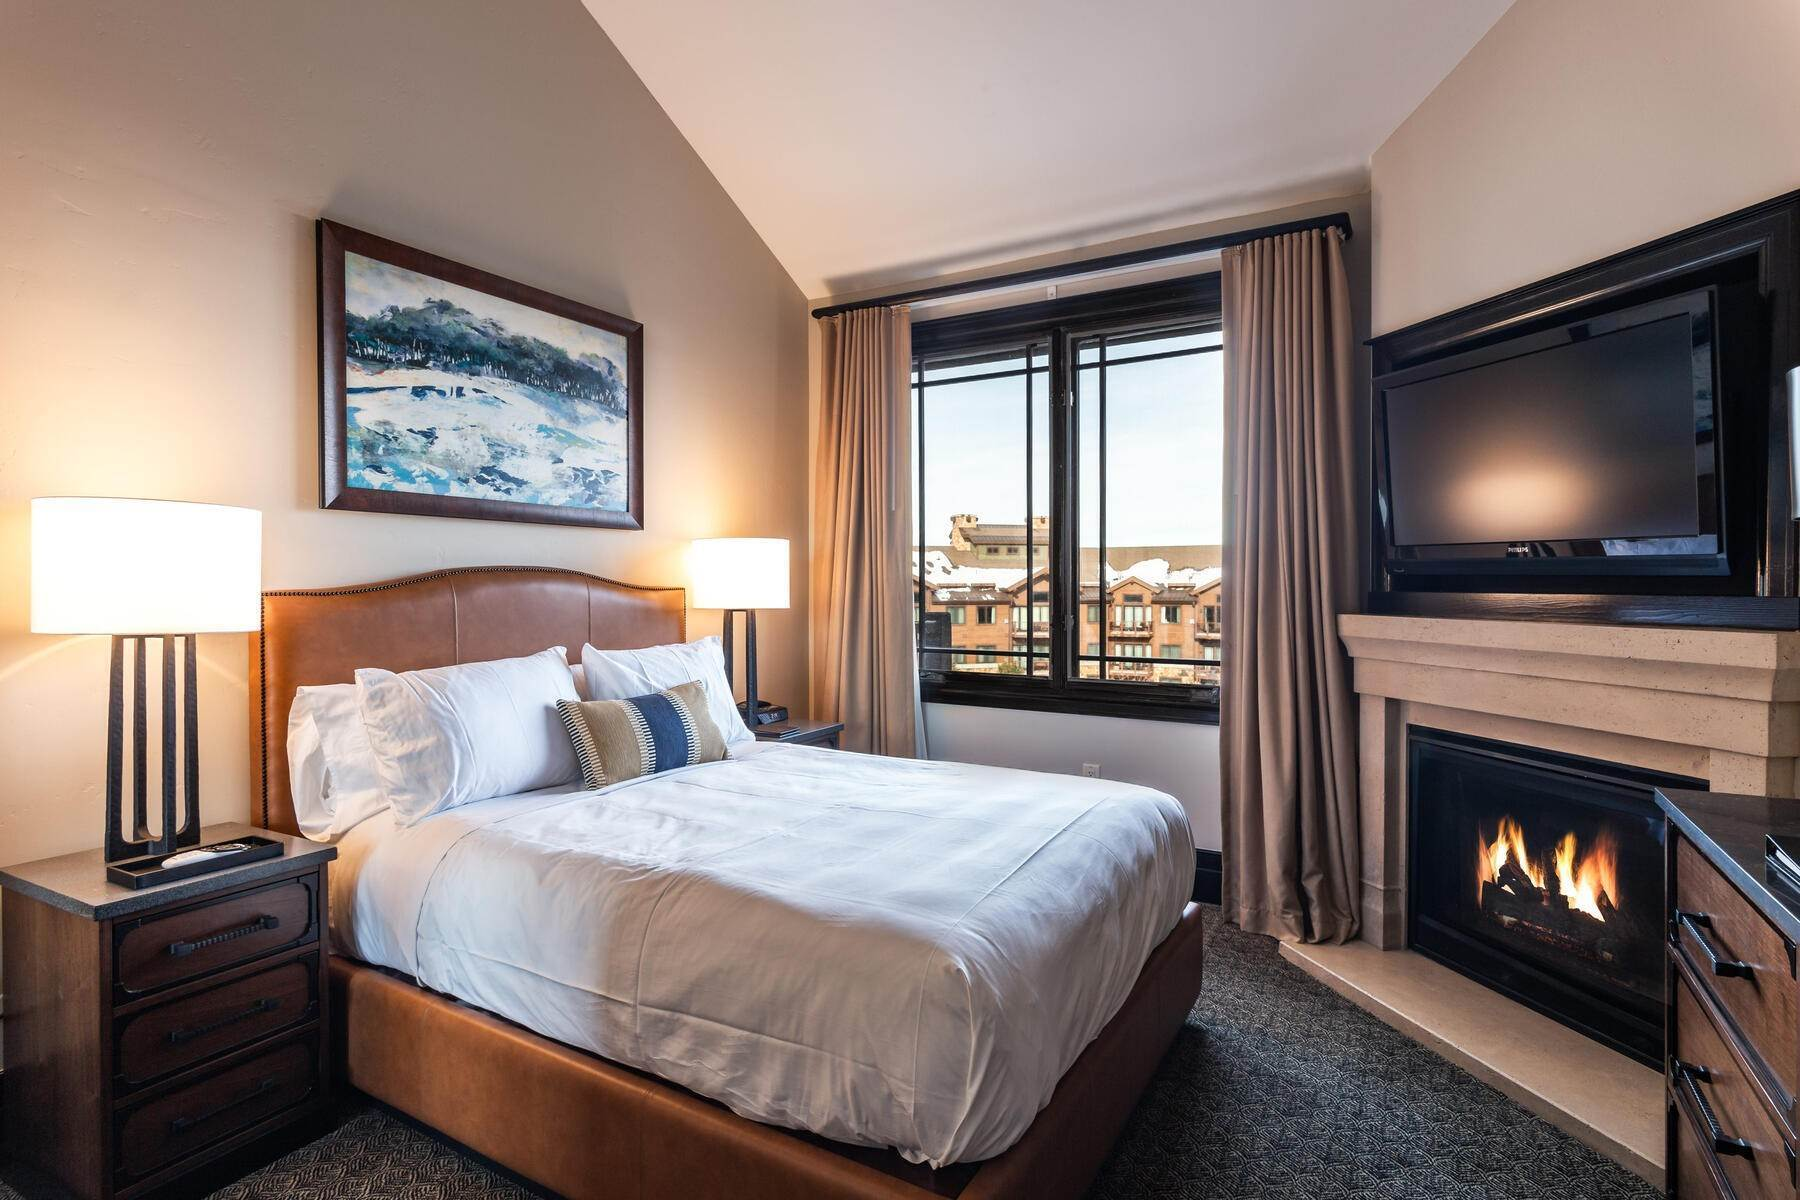 21. Condominiums for Sale at Only 4-Bedroom Available at Waldorf Astoria, Top Floor, Penthouse Unit 2100 W Frostwood Blvd, #7117 Park City, Utah 84098 United States